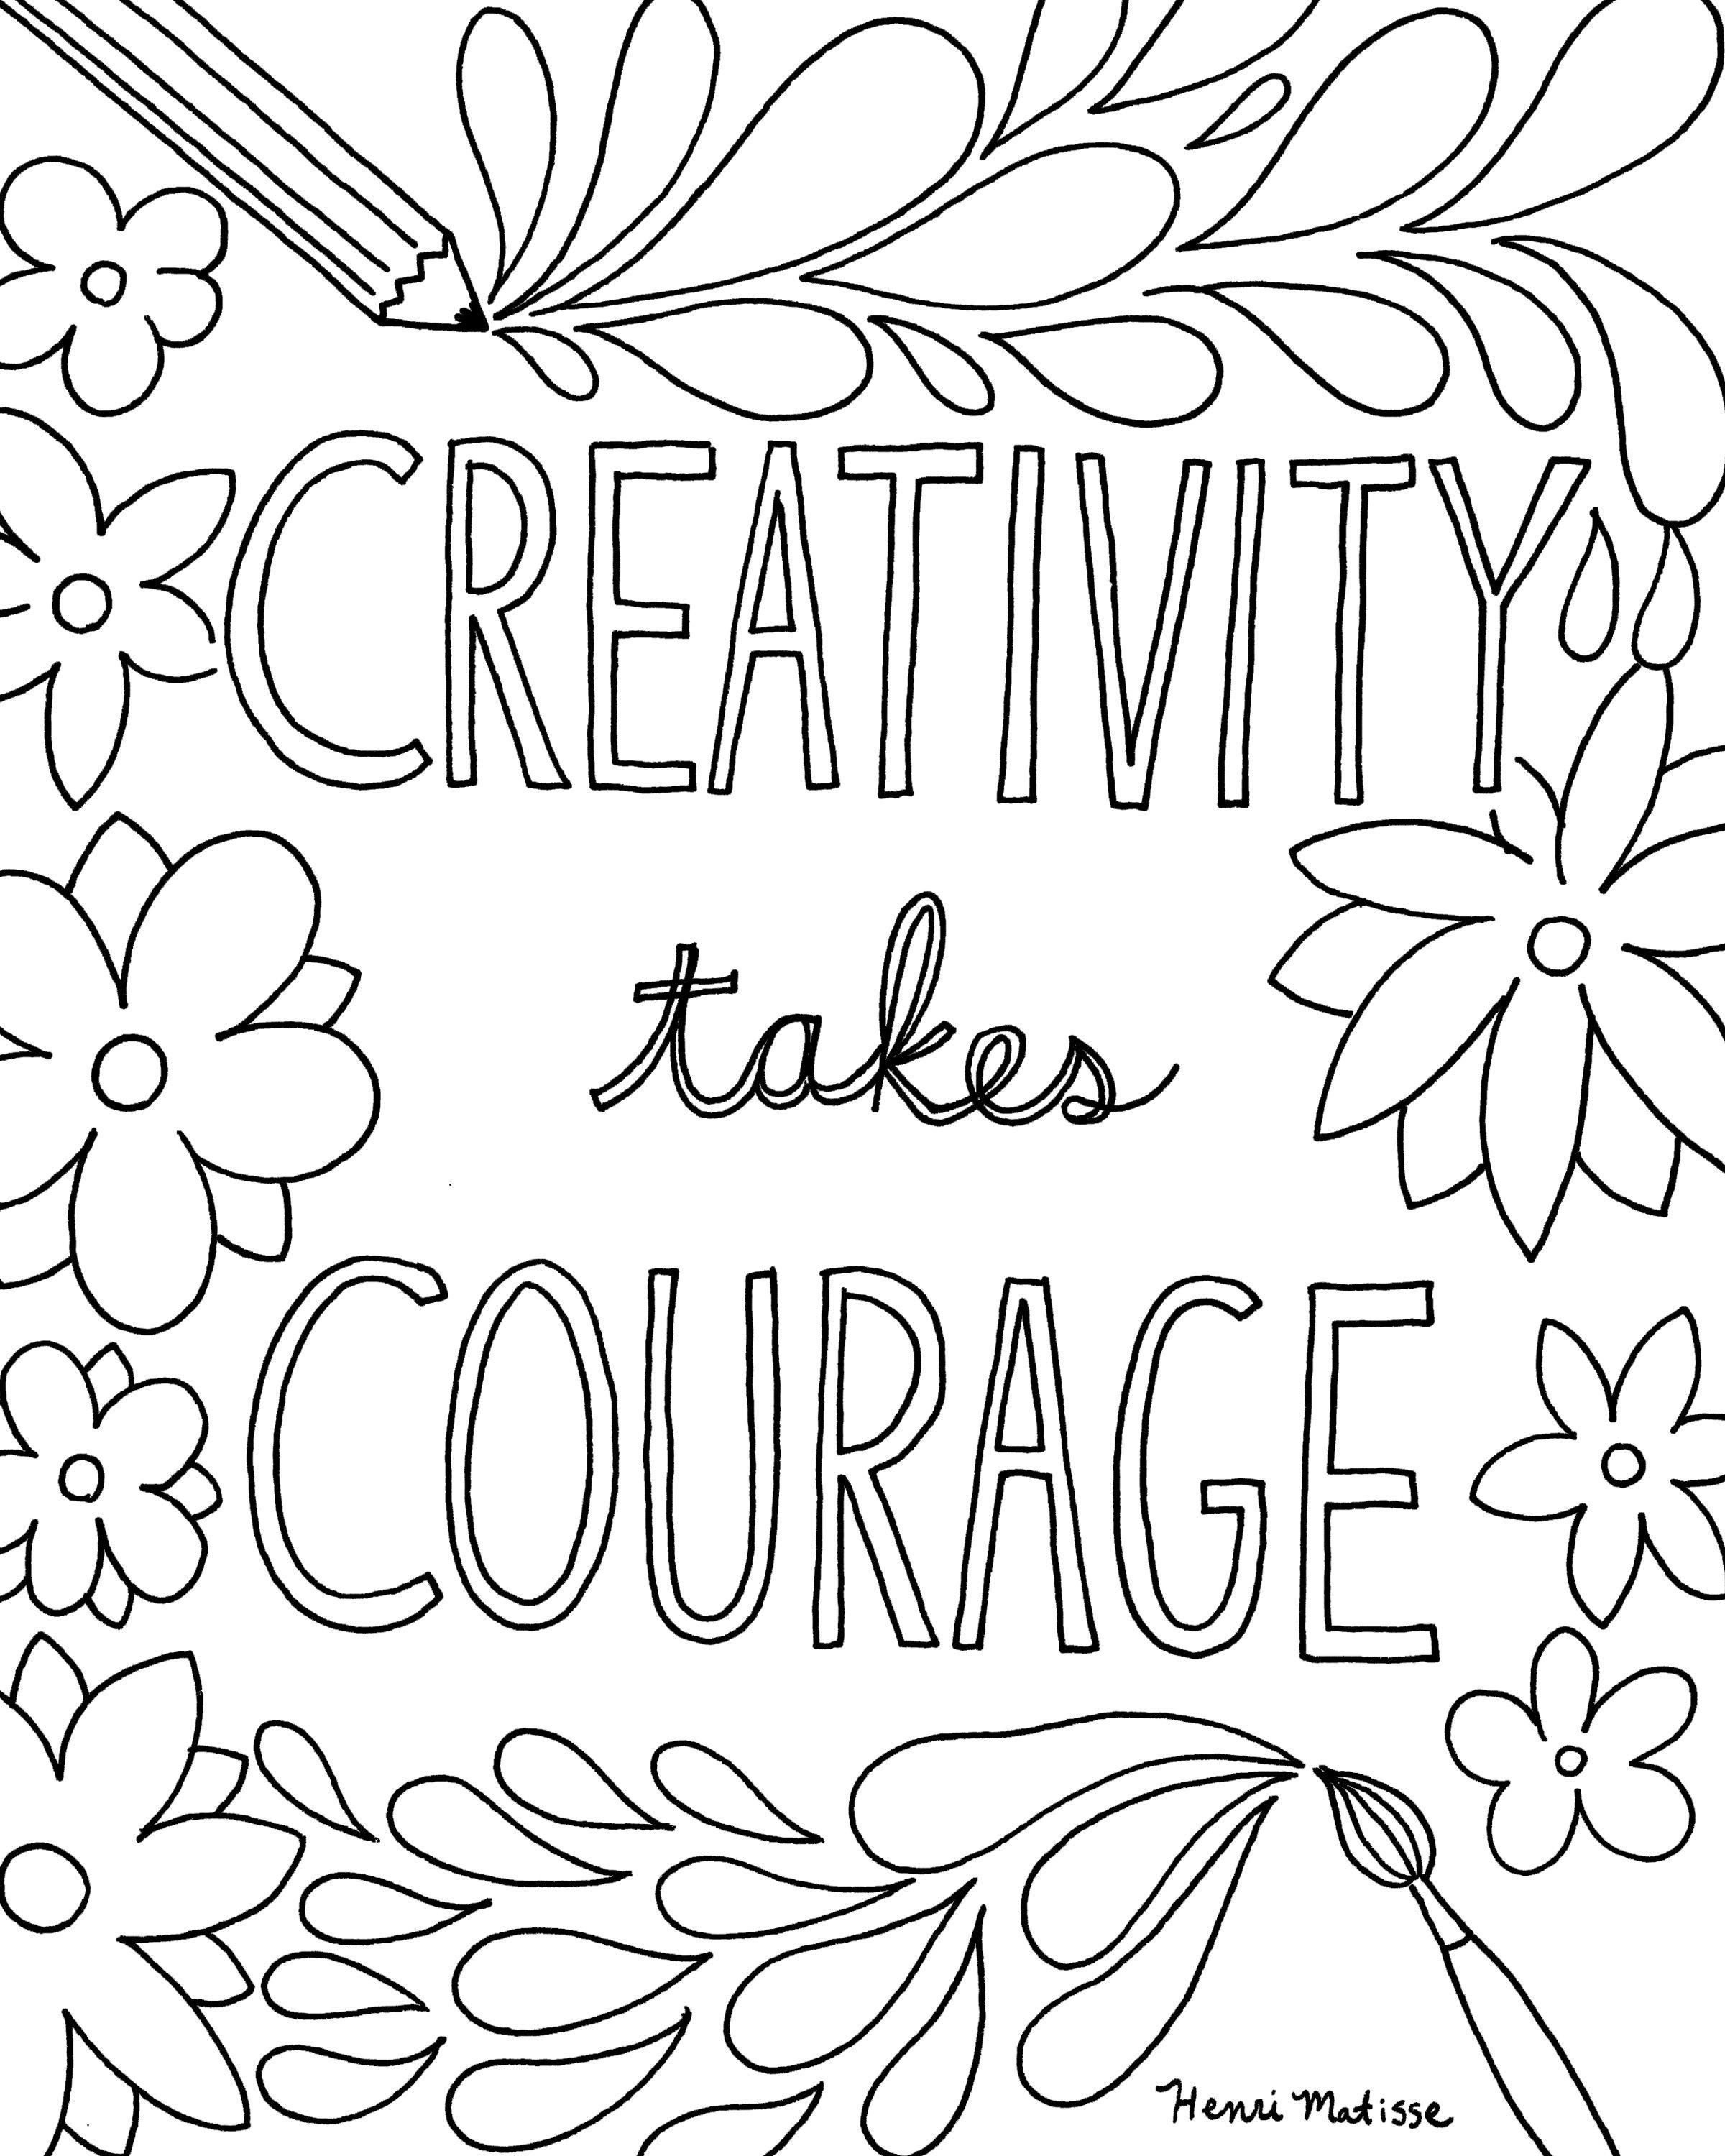 Free Printable Quote Coloring Pages For Grown-Ups | Drawing And - Free Printable Quote Coloring Pages For Adults